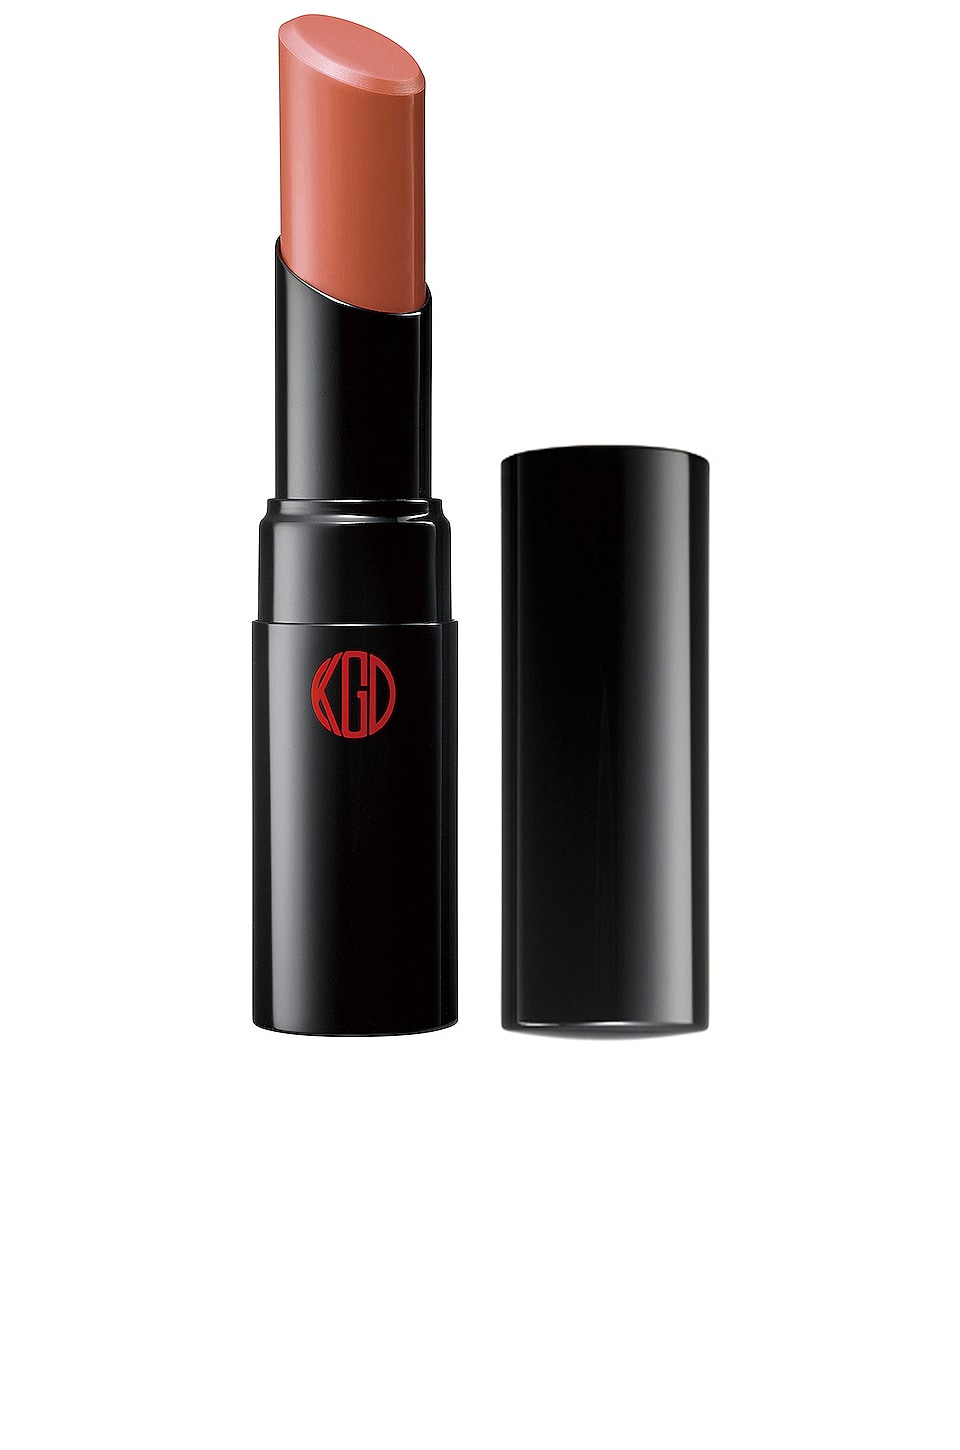 Koh Gen Do Maifanshi Lipstick in BE403